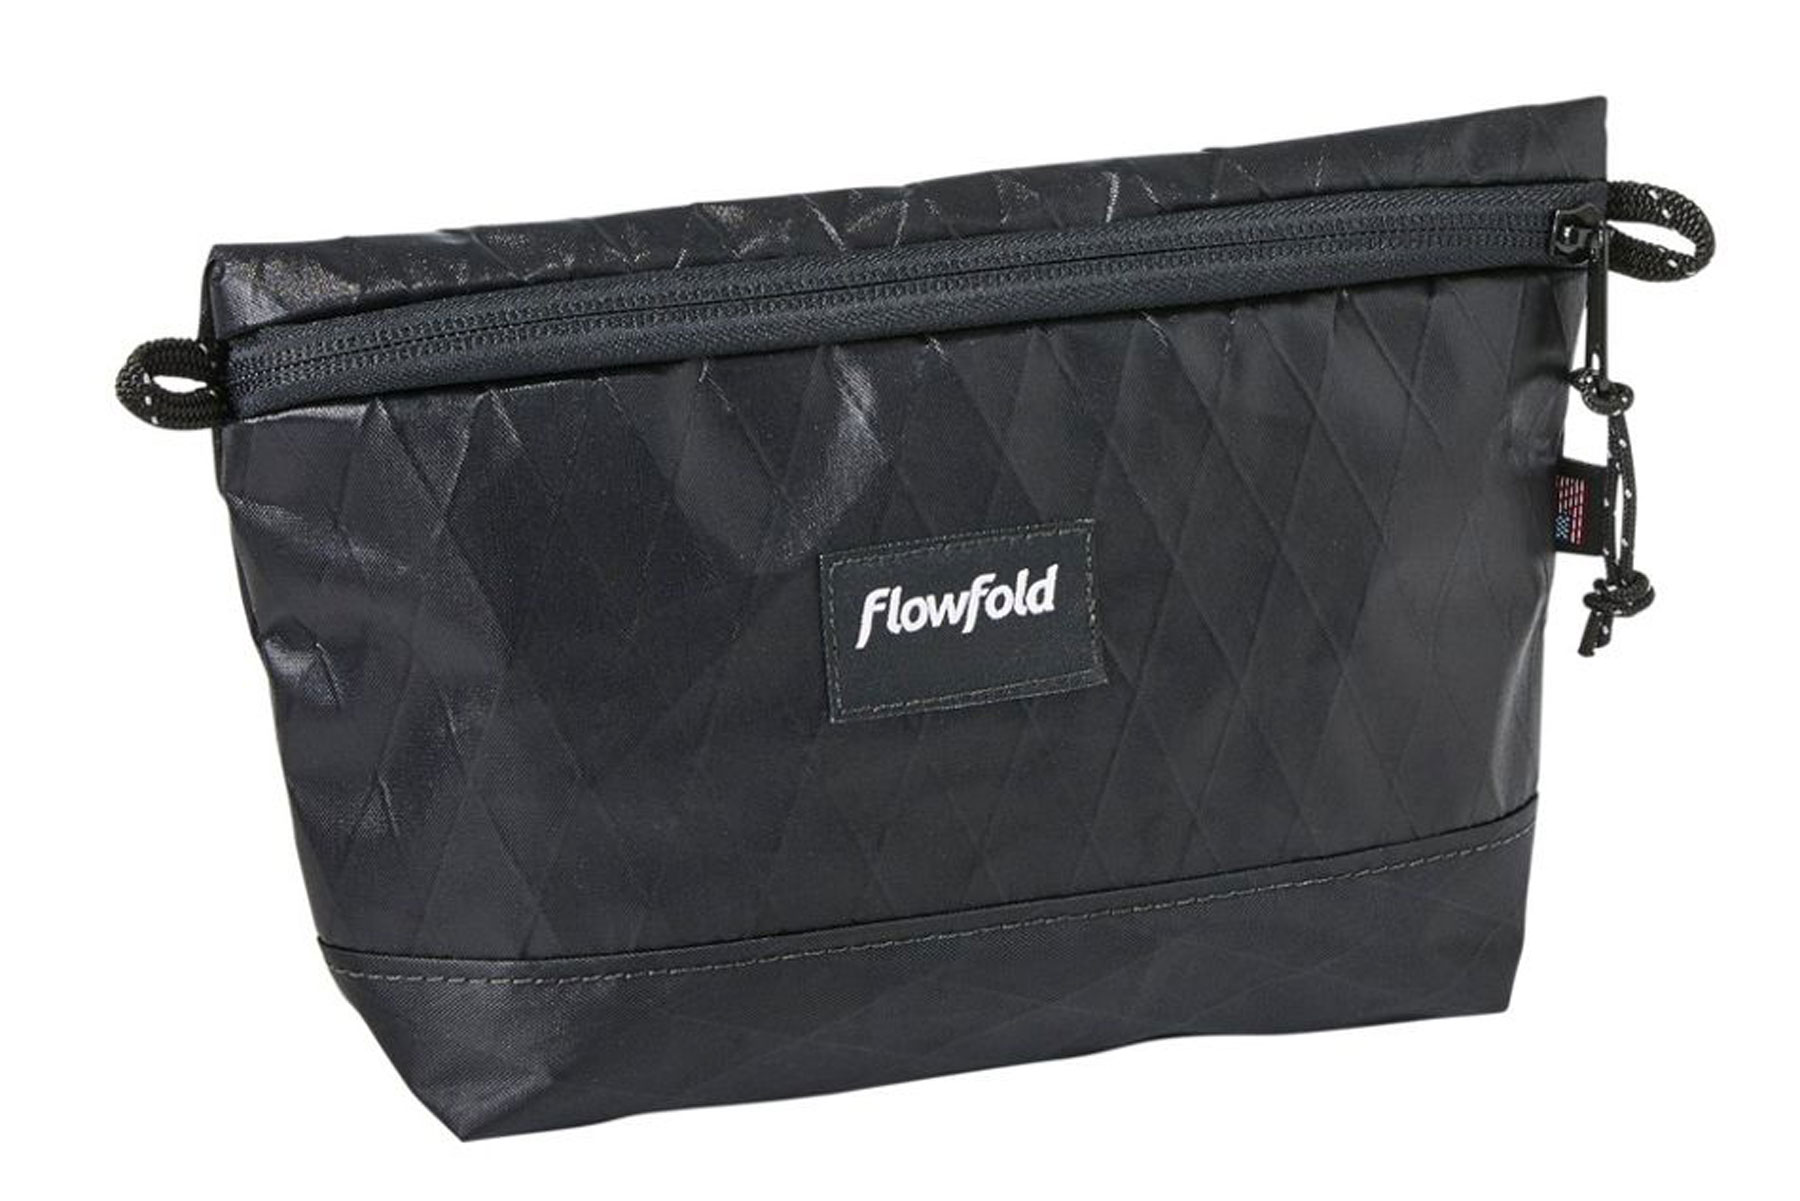 Flowfold Zip Waterproof Pouch